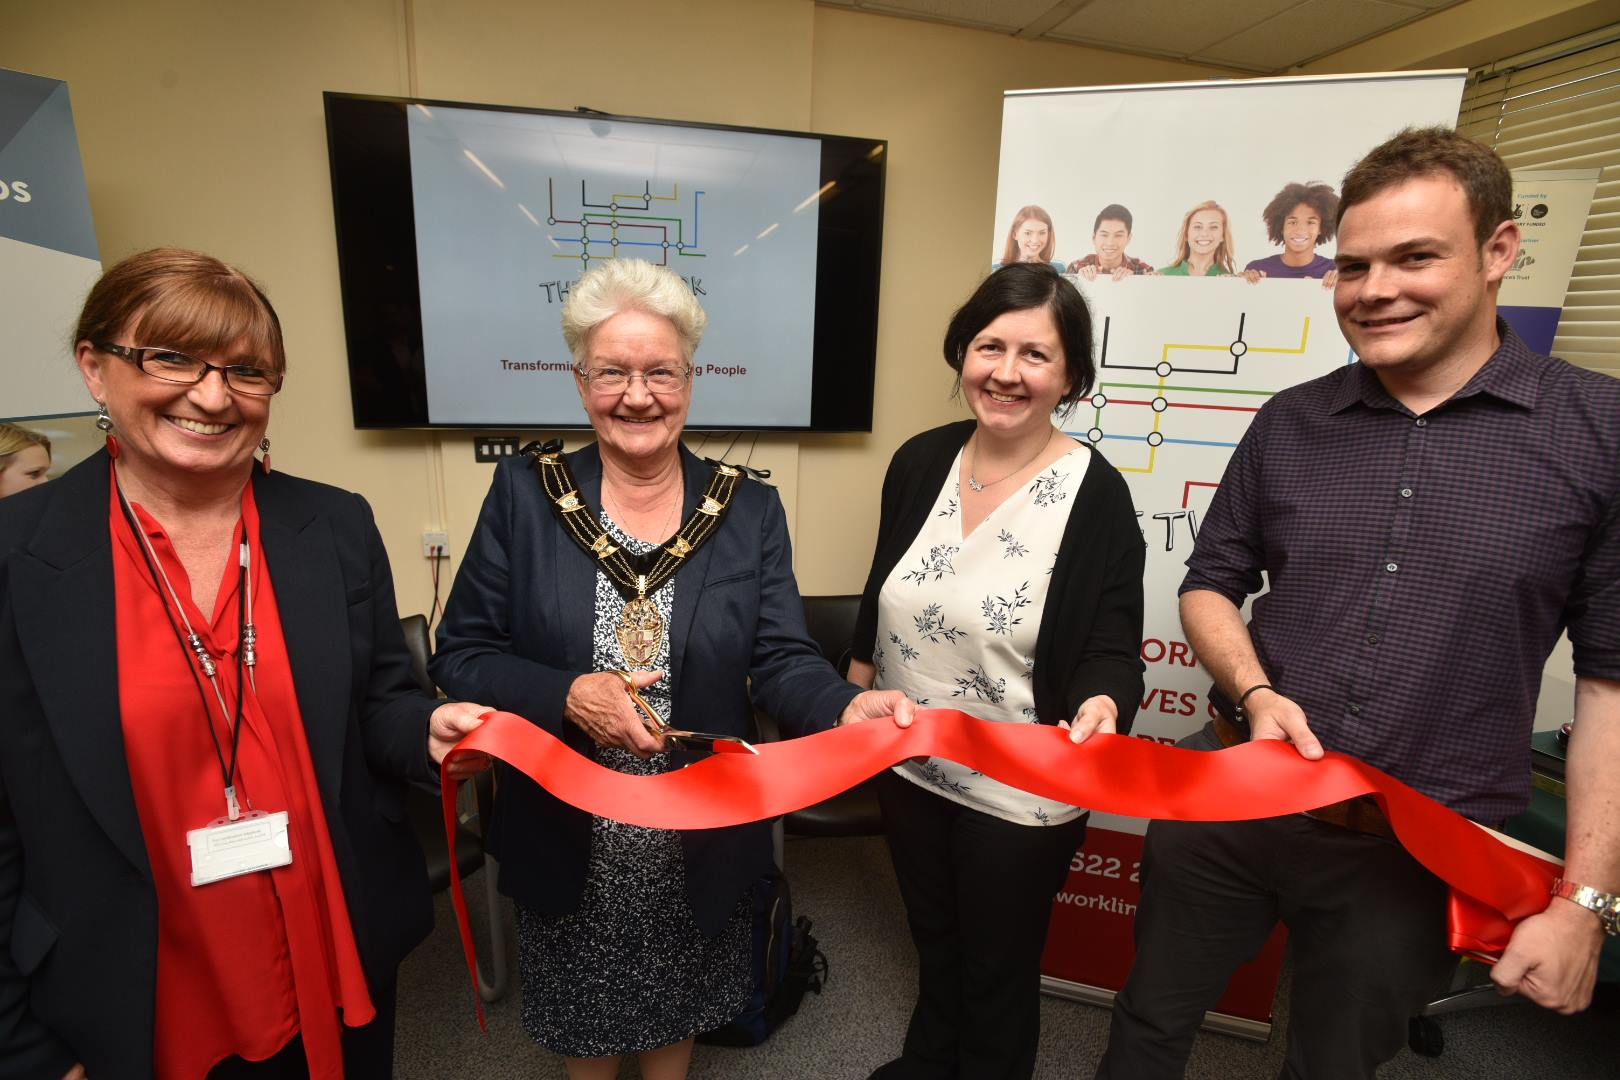 (L-R) Gail Dunn, Chair of Trustees for The Network, Yvonne Bodger, Mayor of Lincoln, Councillor Rose Ankirk and Ben Barley, Chief Executive for Voluntary Centre Services